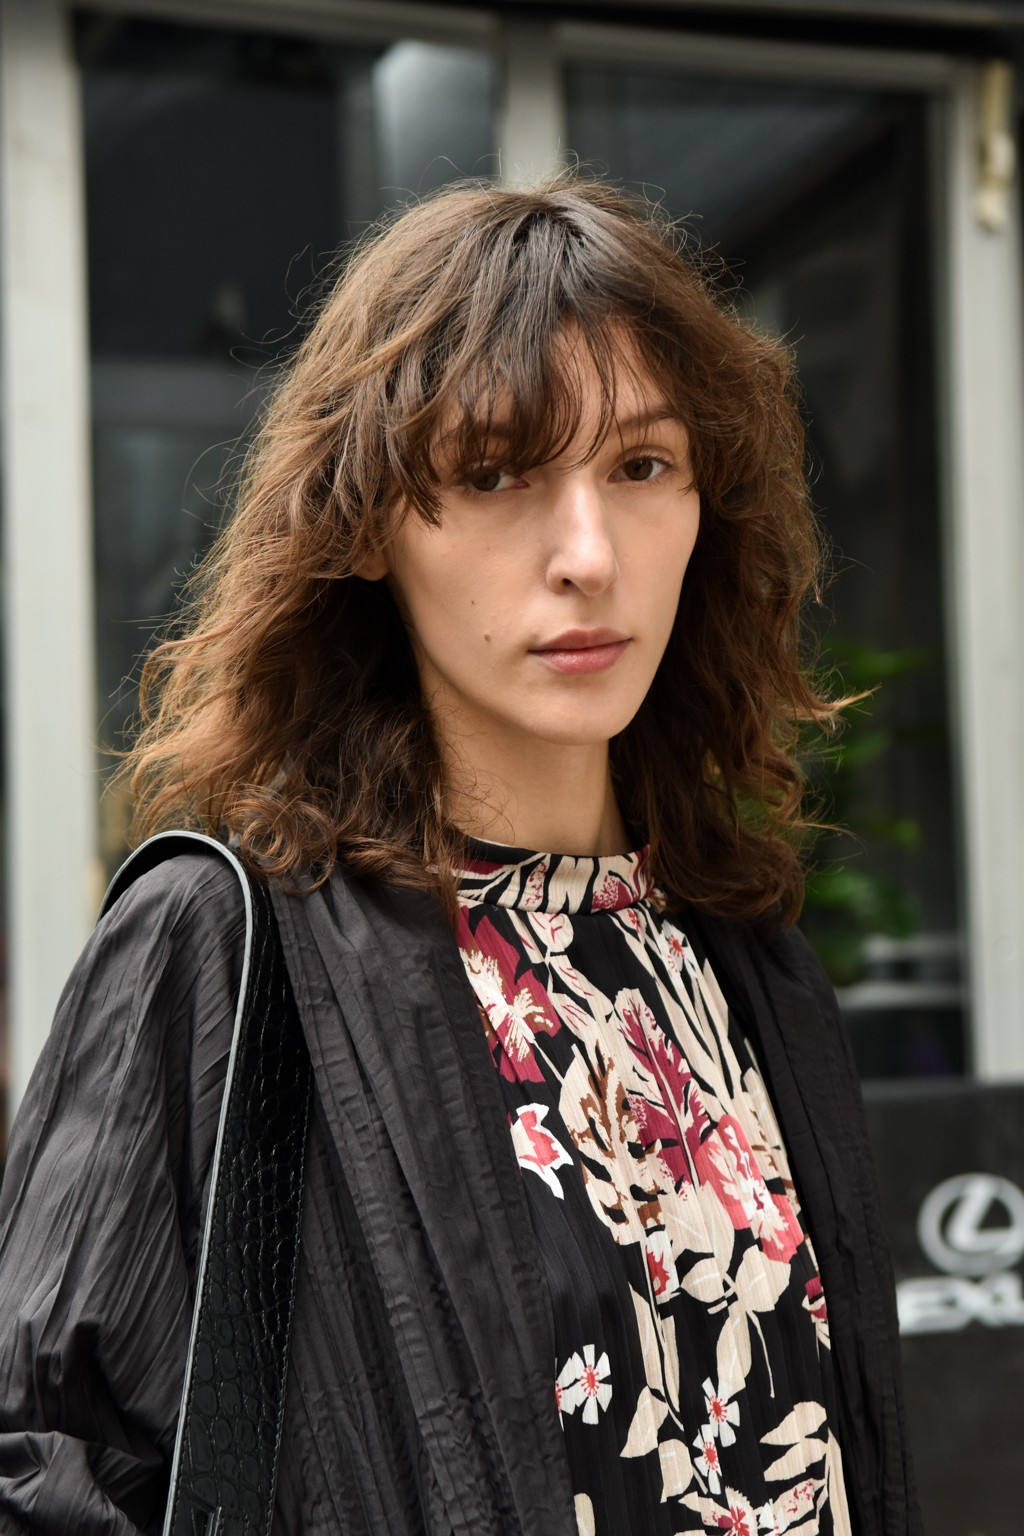 Hair treatment guide: Woman with medium brown shaggy hair with fringe, wearing leather jacket and floral top